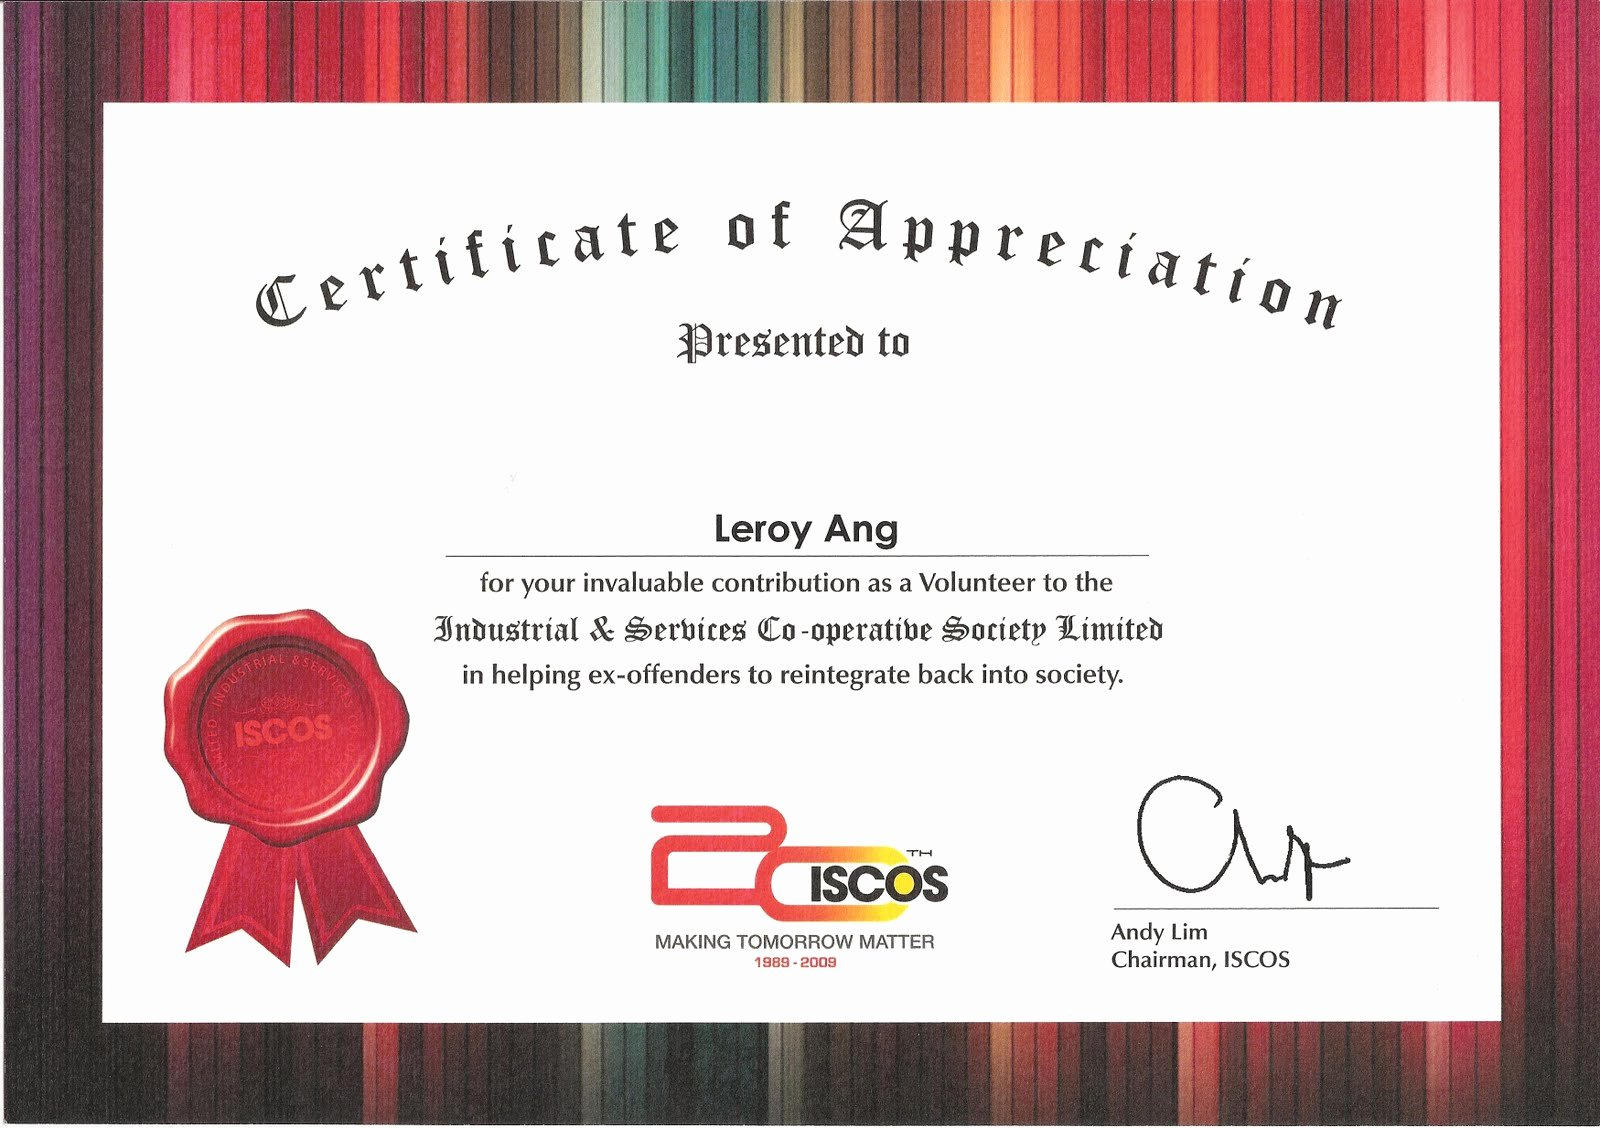 Certificate Of Appreciation for Volunteers Awesome La S B L O G iscos Certificate Of Appreciation